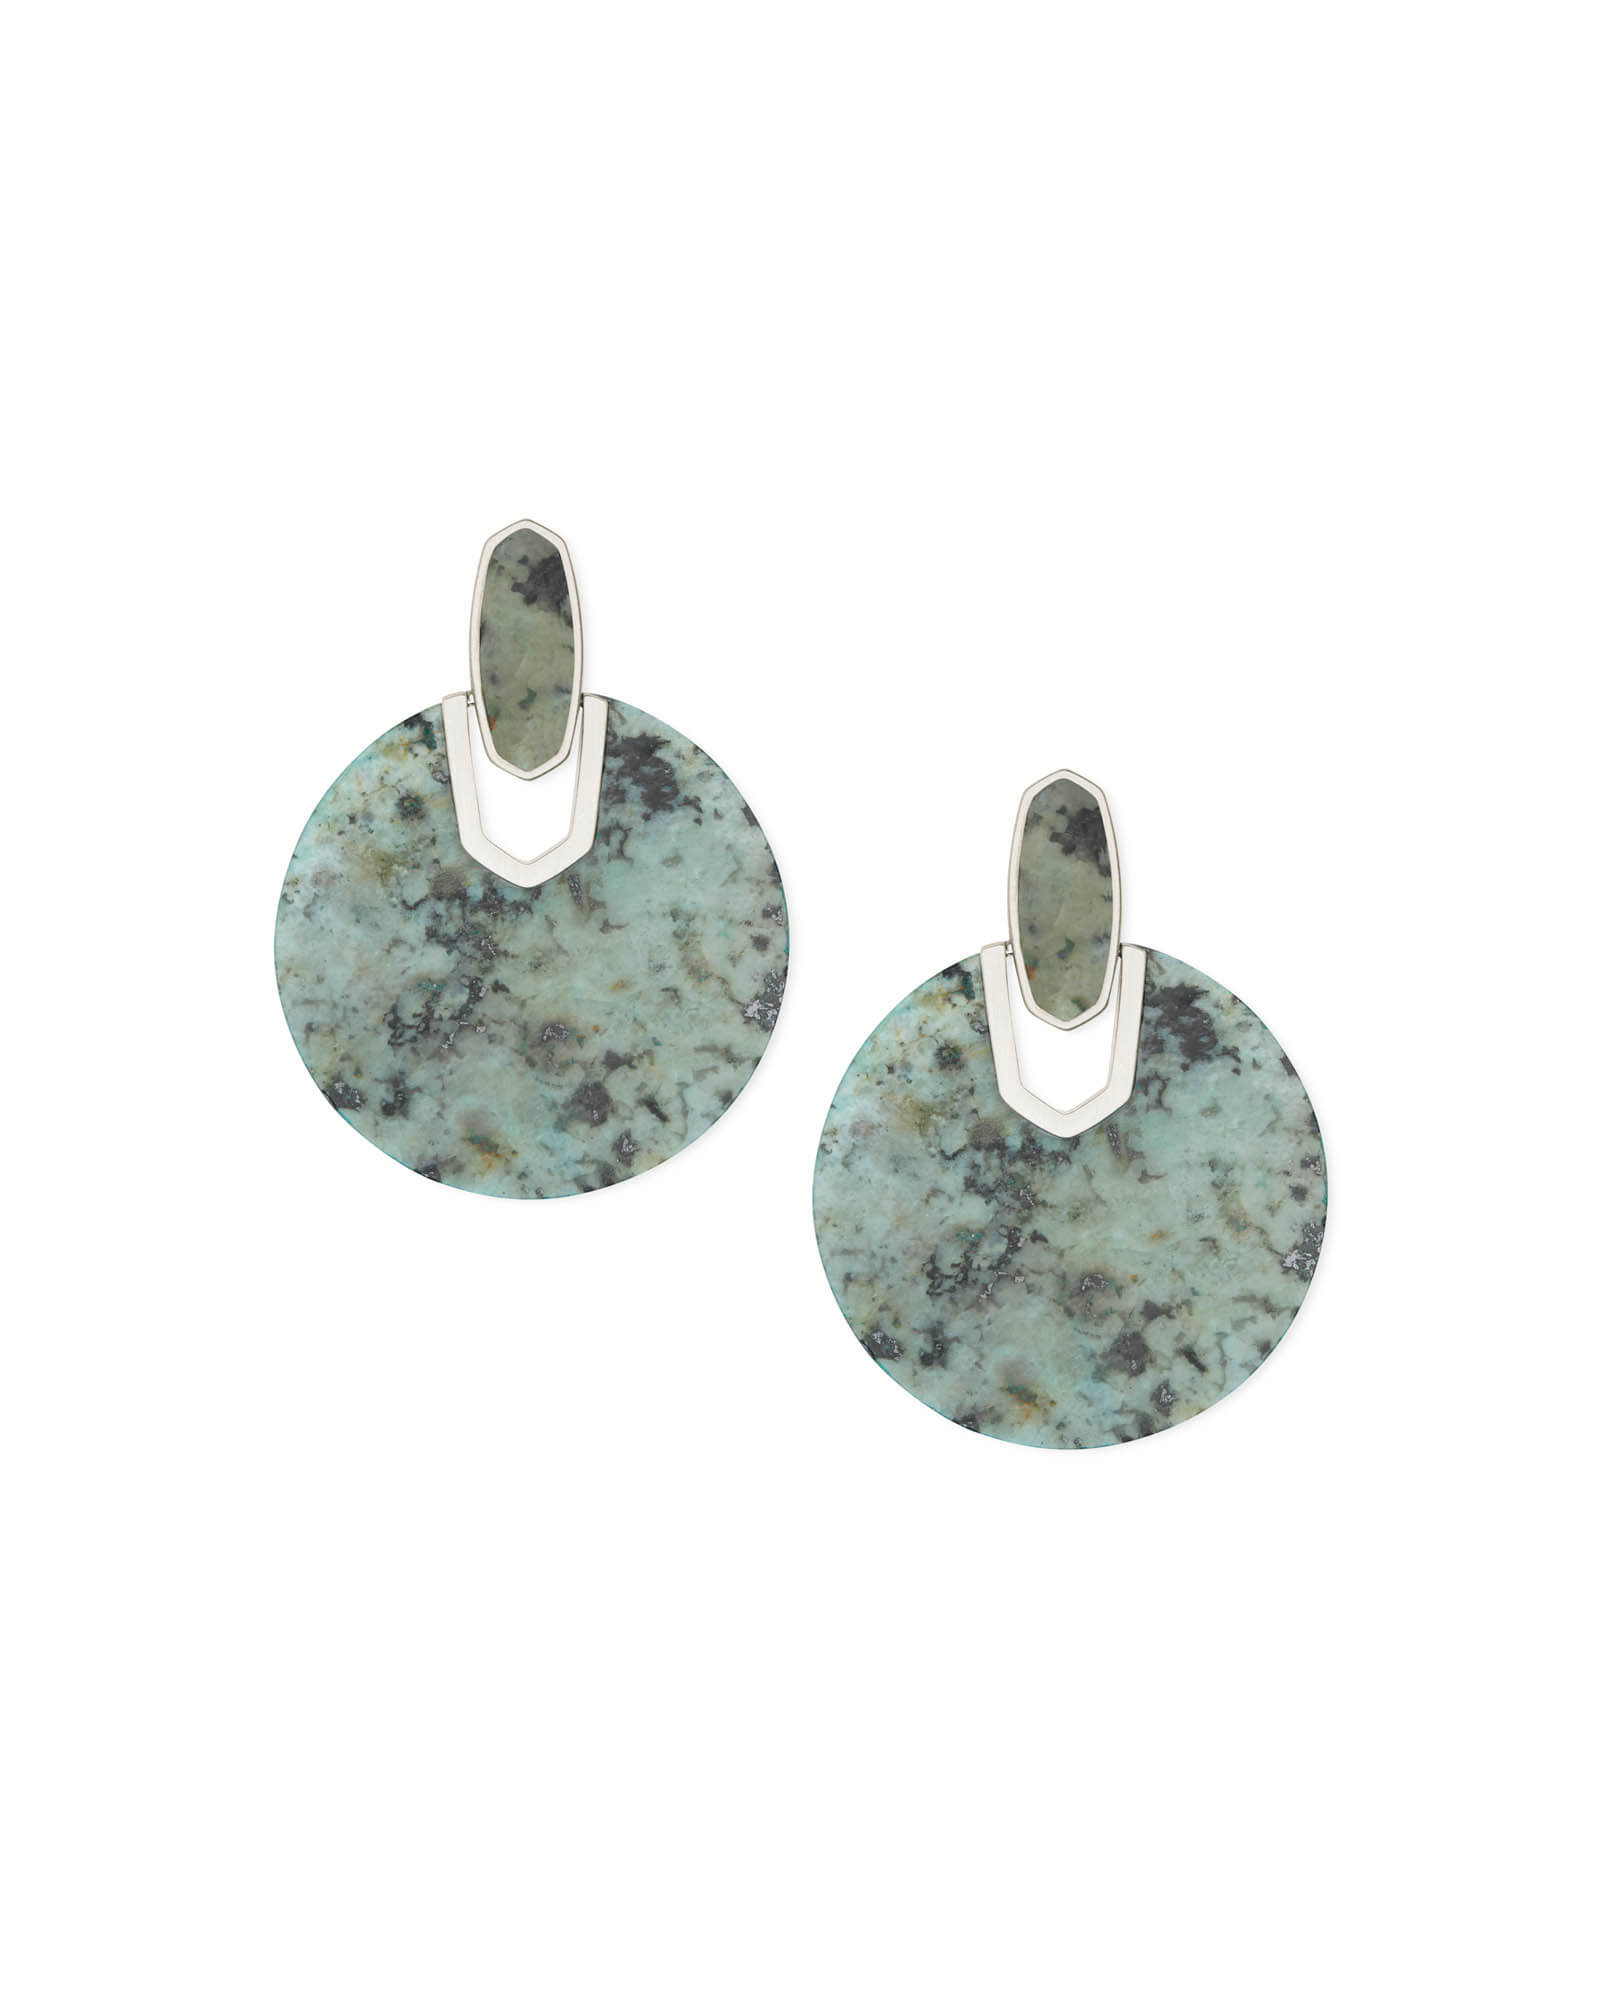 Didi Silver Statement Earrings in African Turquoise